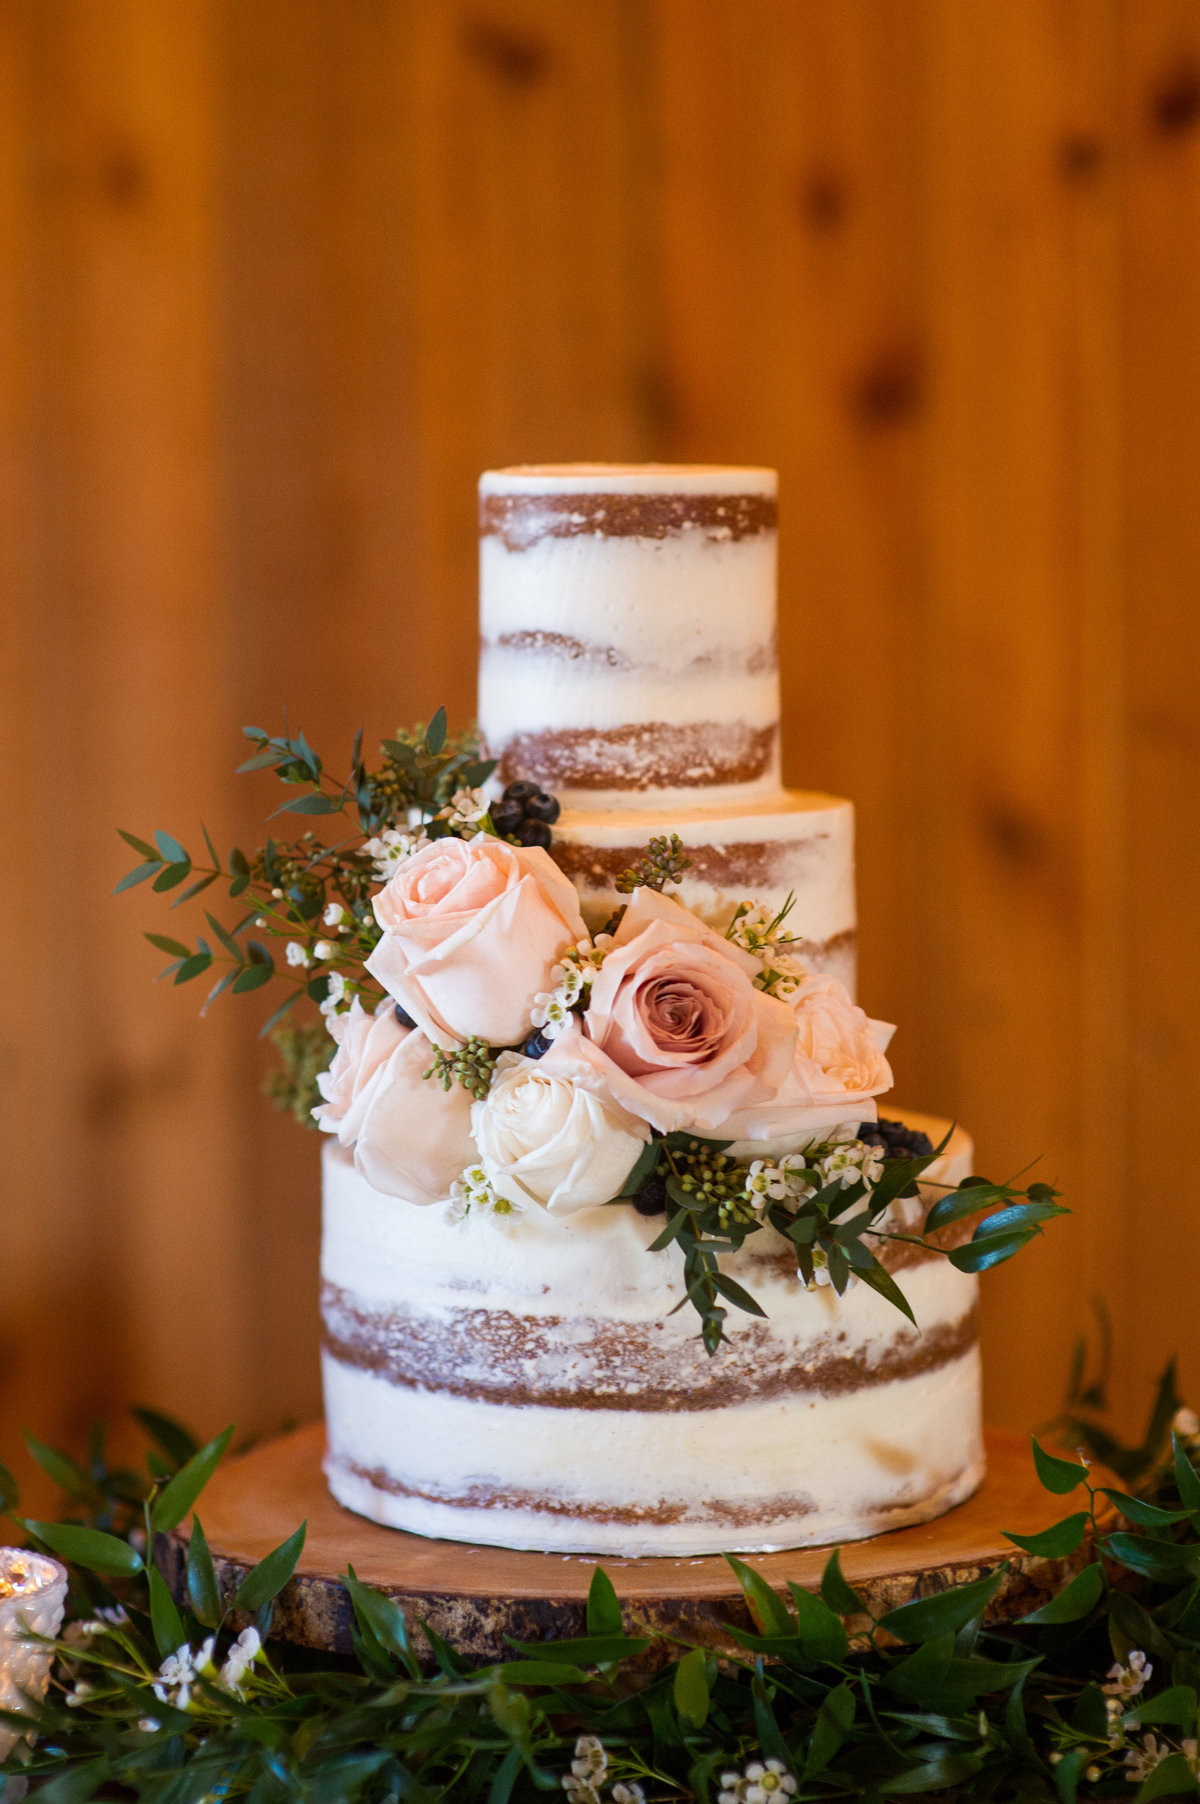 Whippt Wedding Cake - Semi-Naked design - credit paulina ochoa photography3